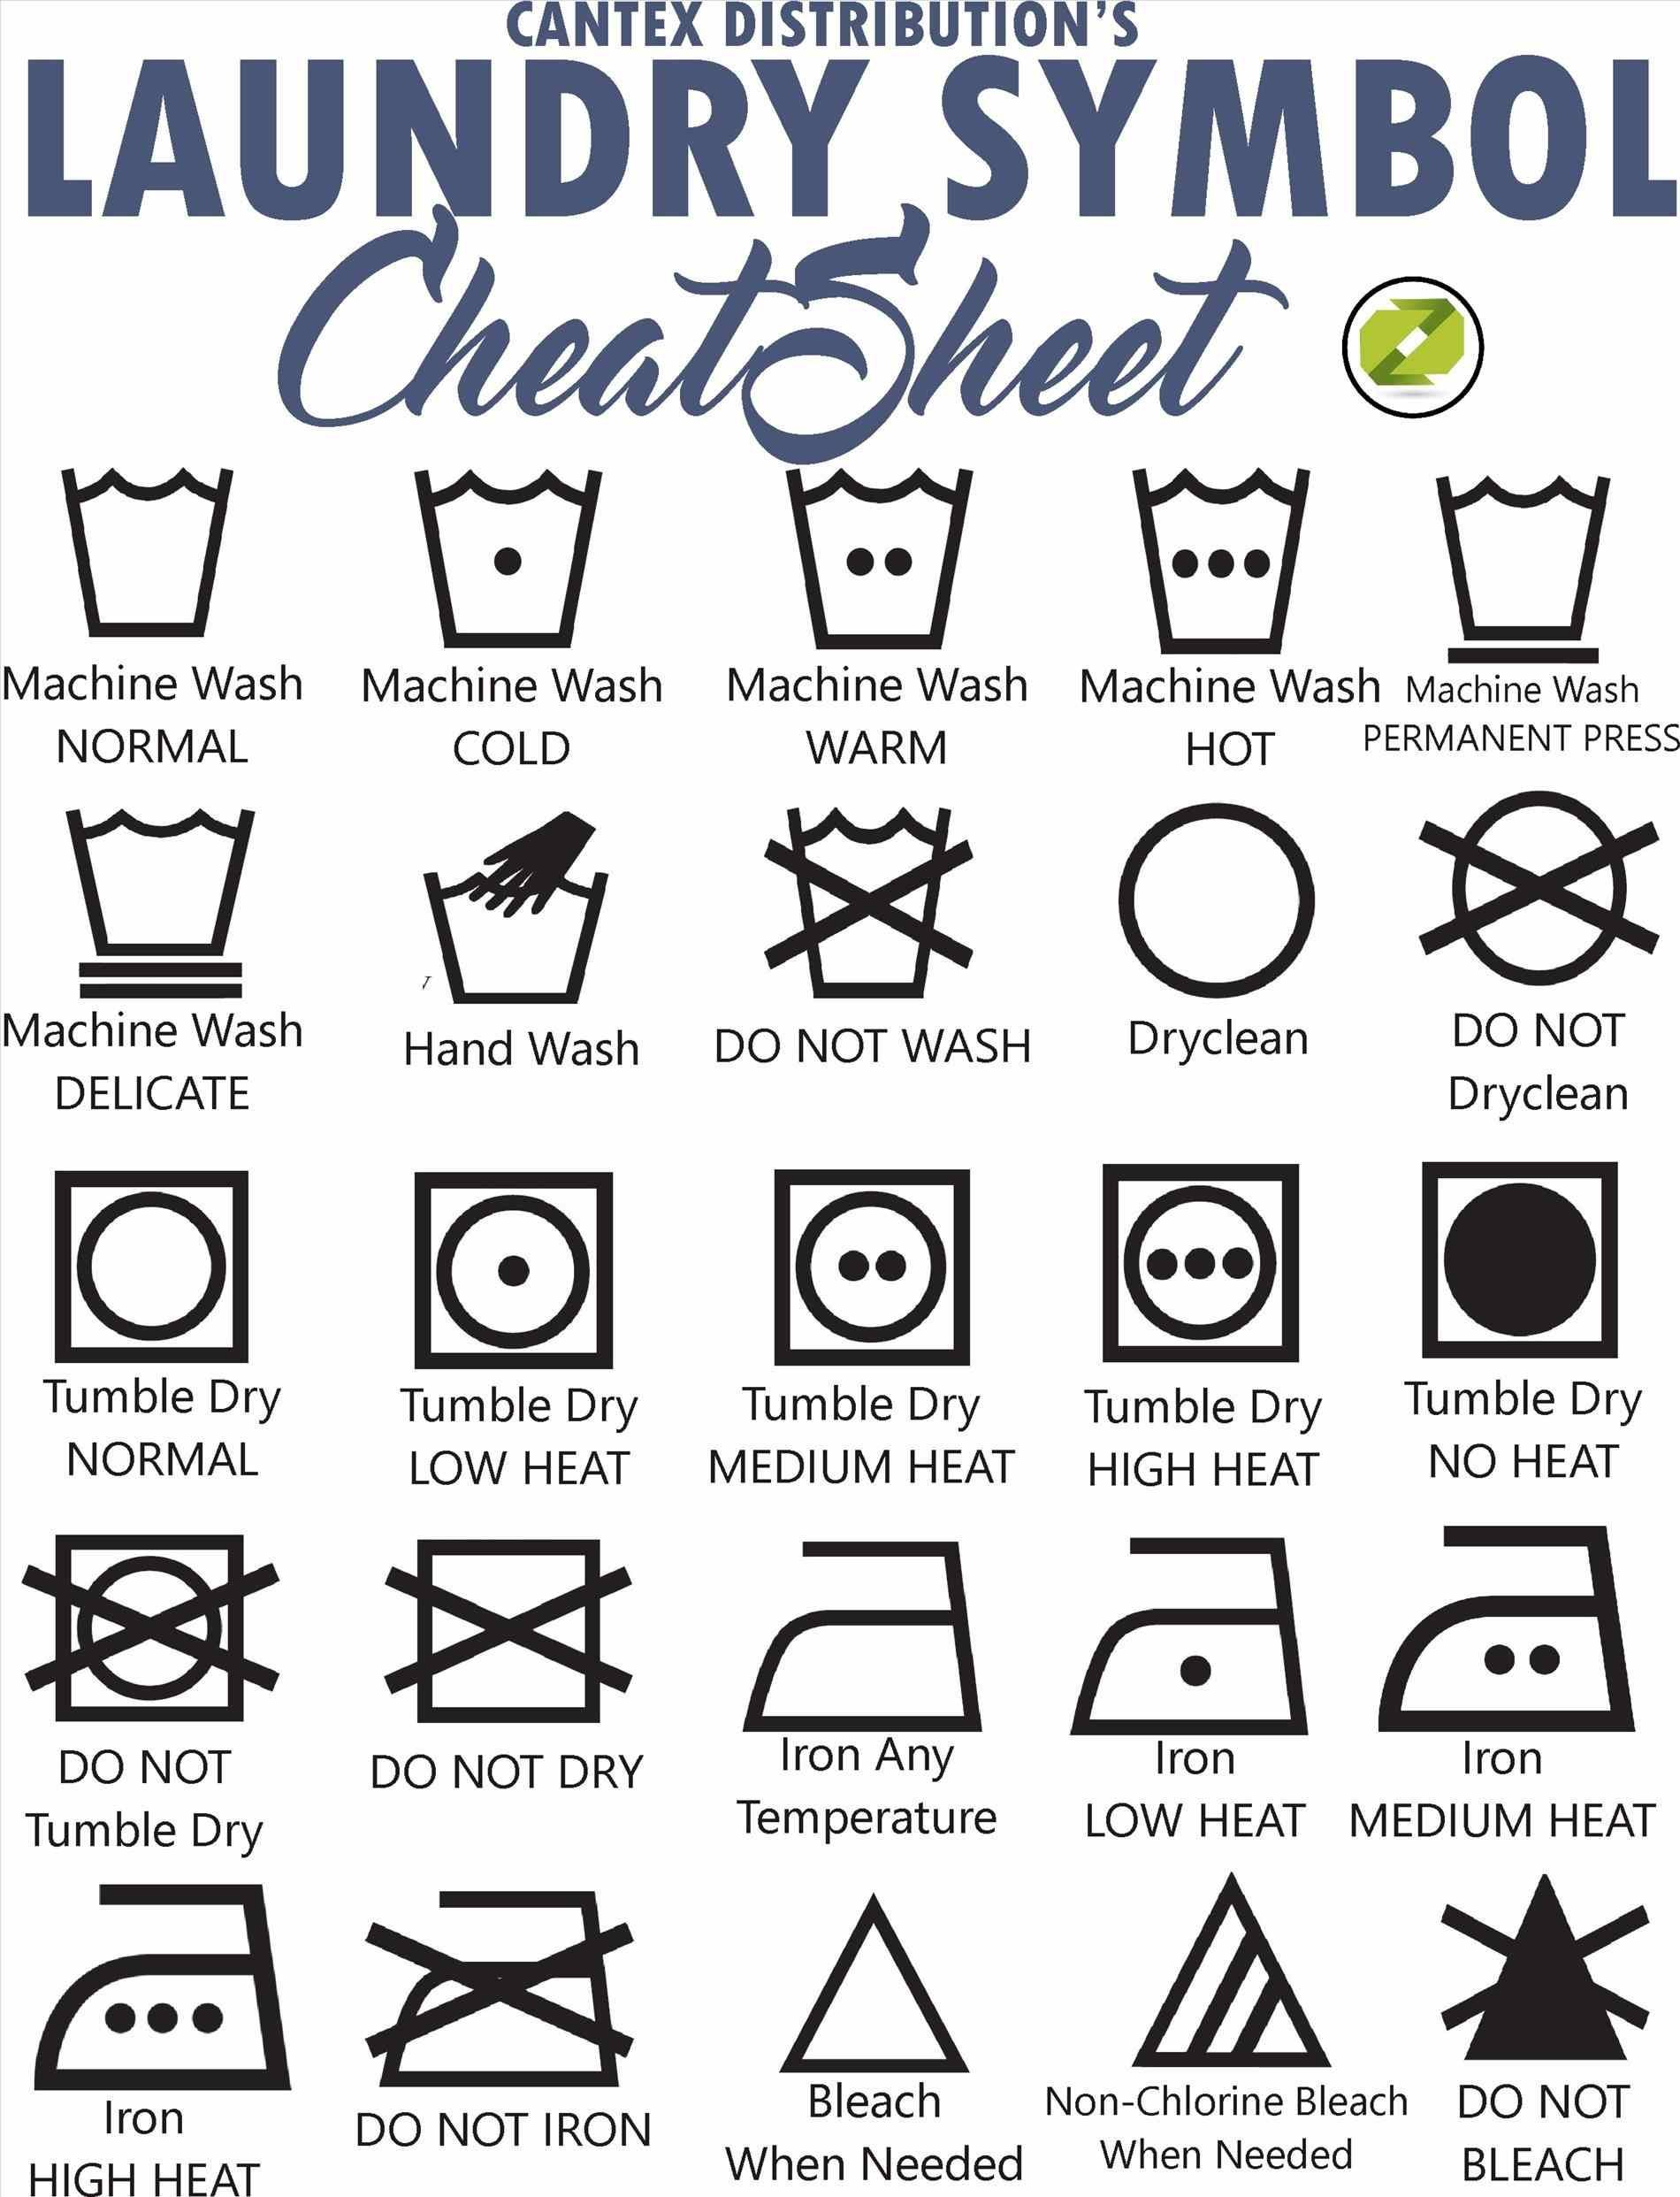 Signs And What They Mean To Wash Drycleanonly Clothes At Home